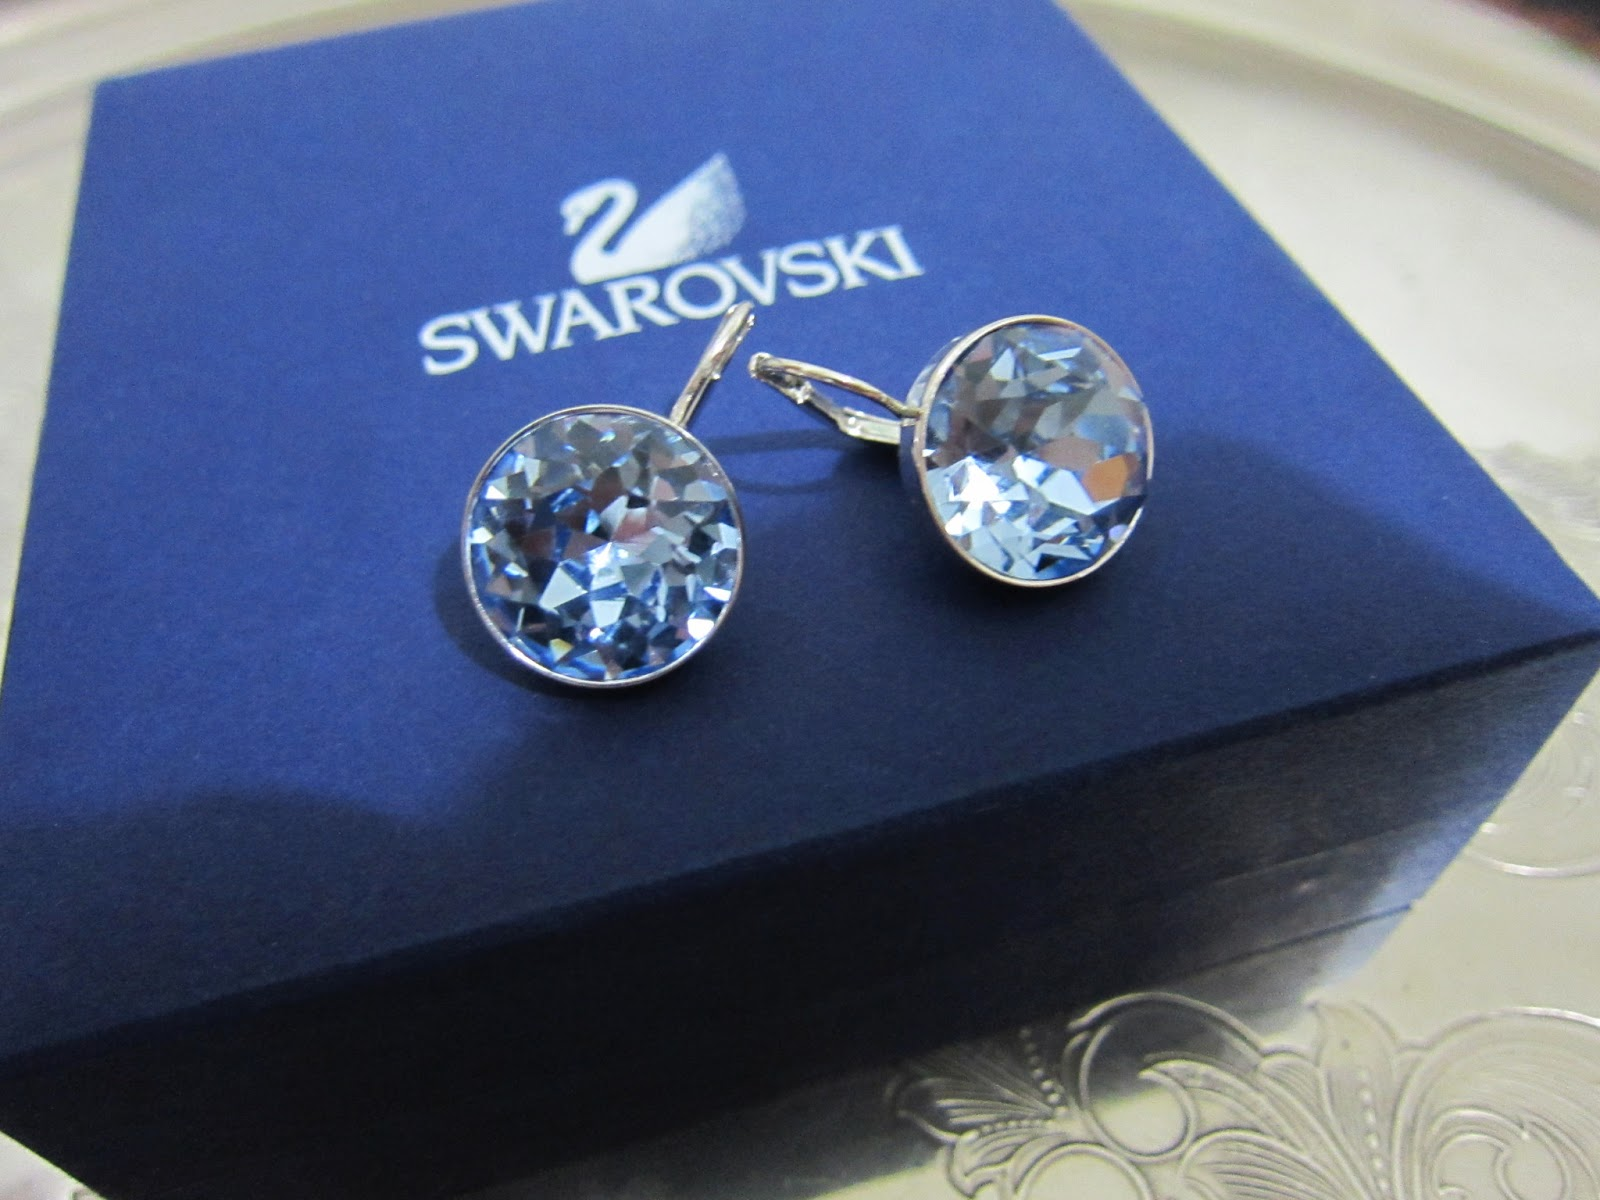 Swarovski Bella Light Shire Pierced Earrings